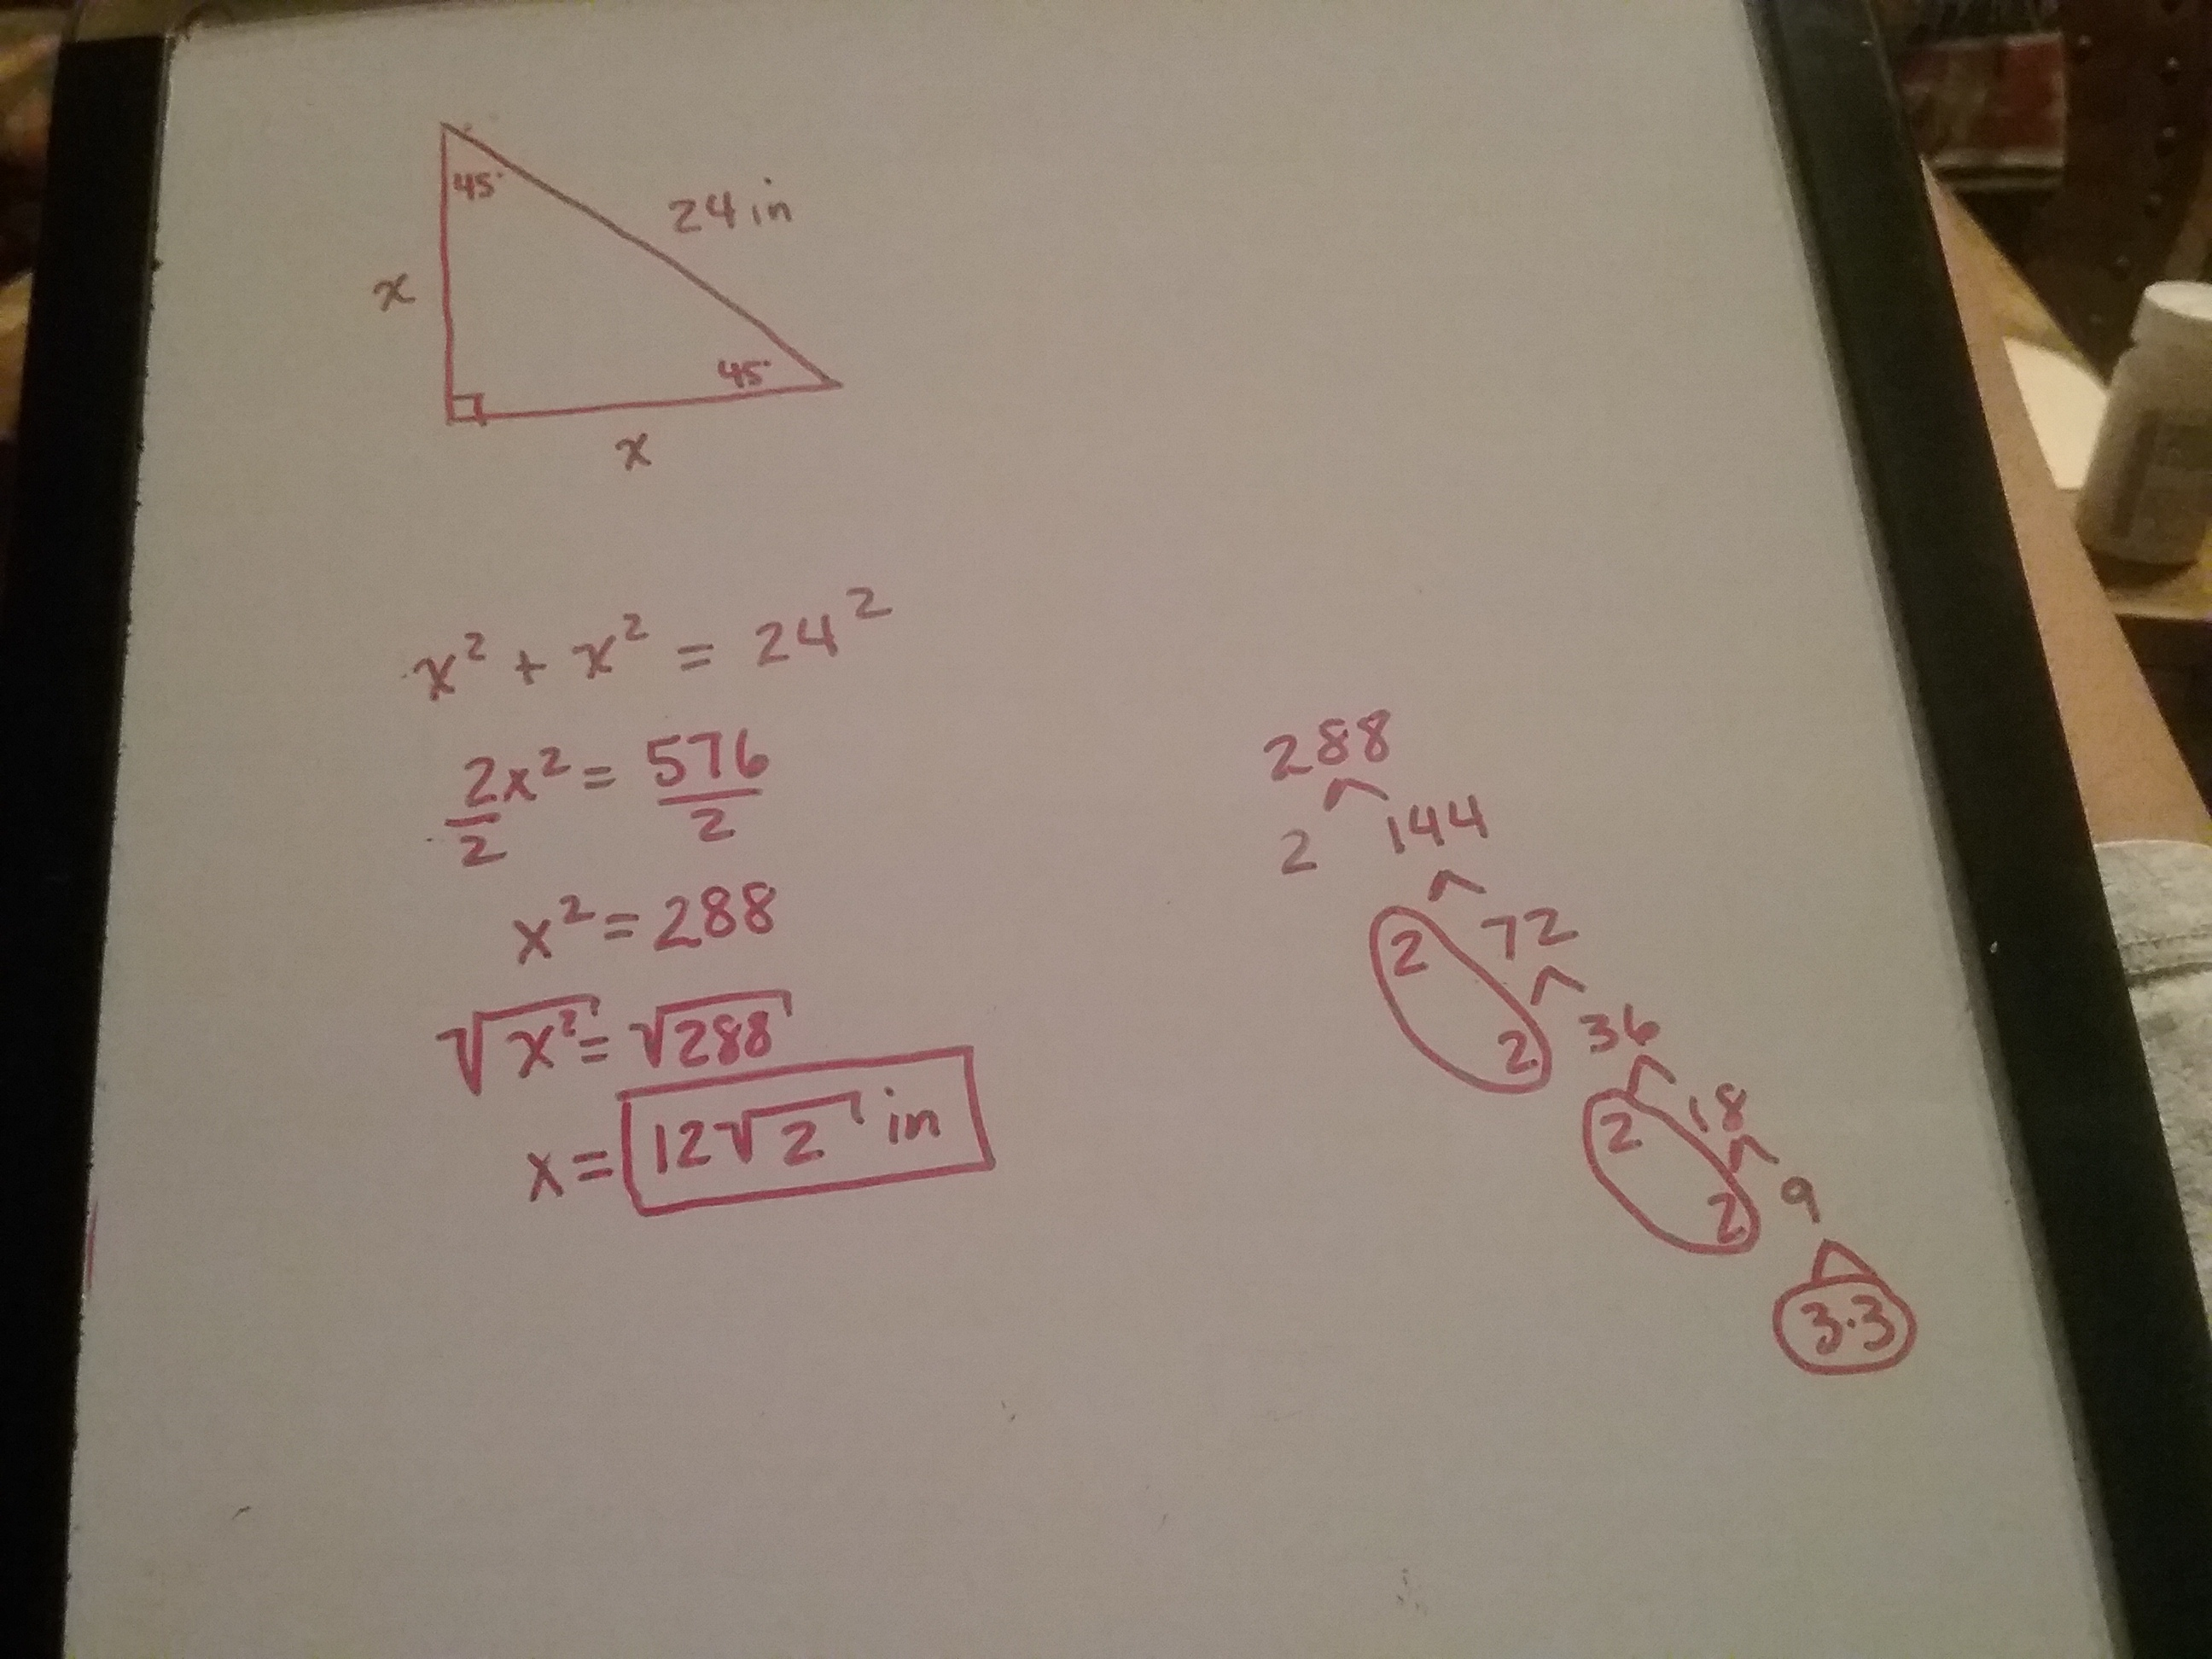 The Hypotenuse Of A 45 45 90 Triangle Measures 24 Inches